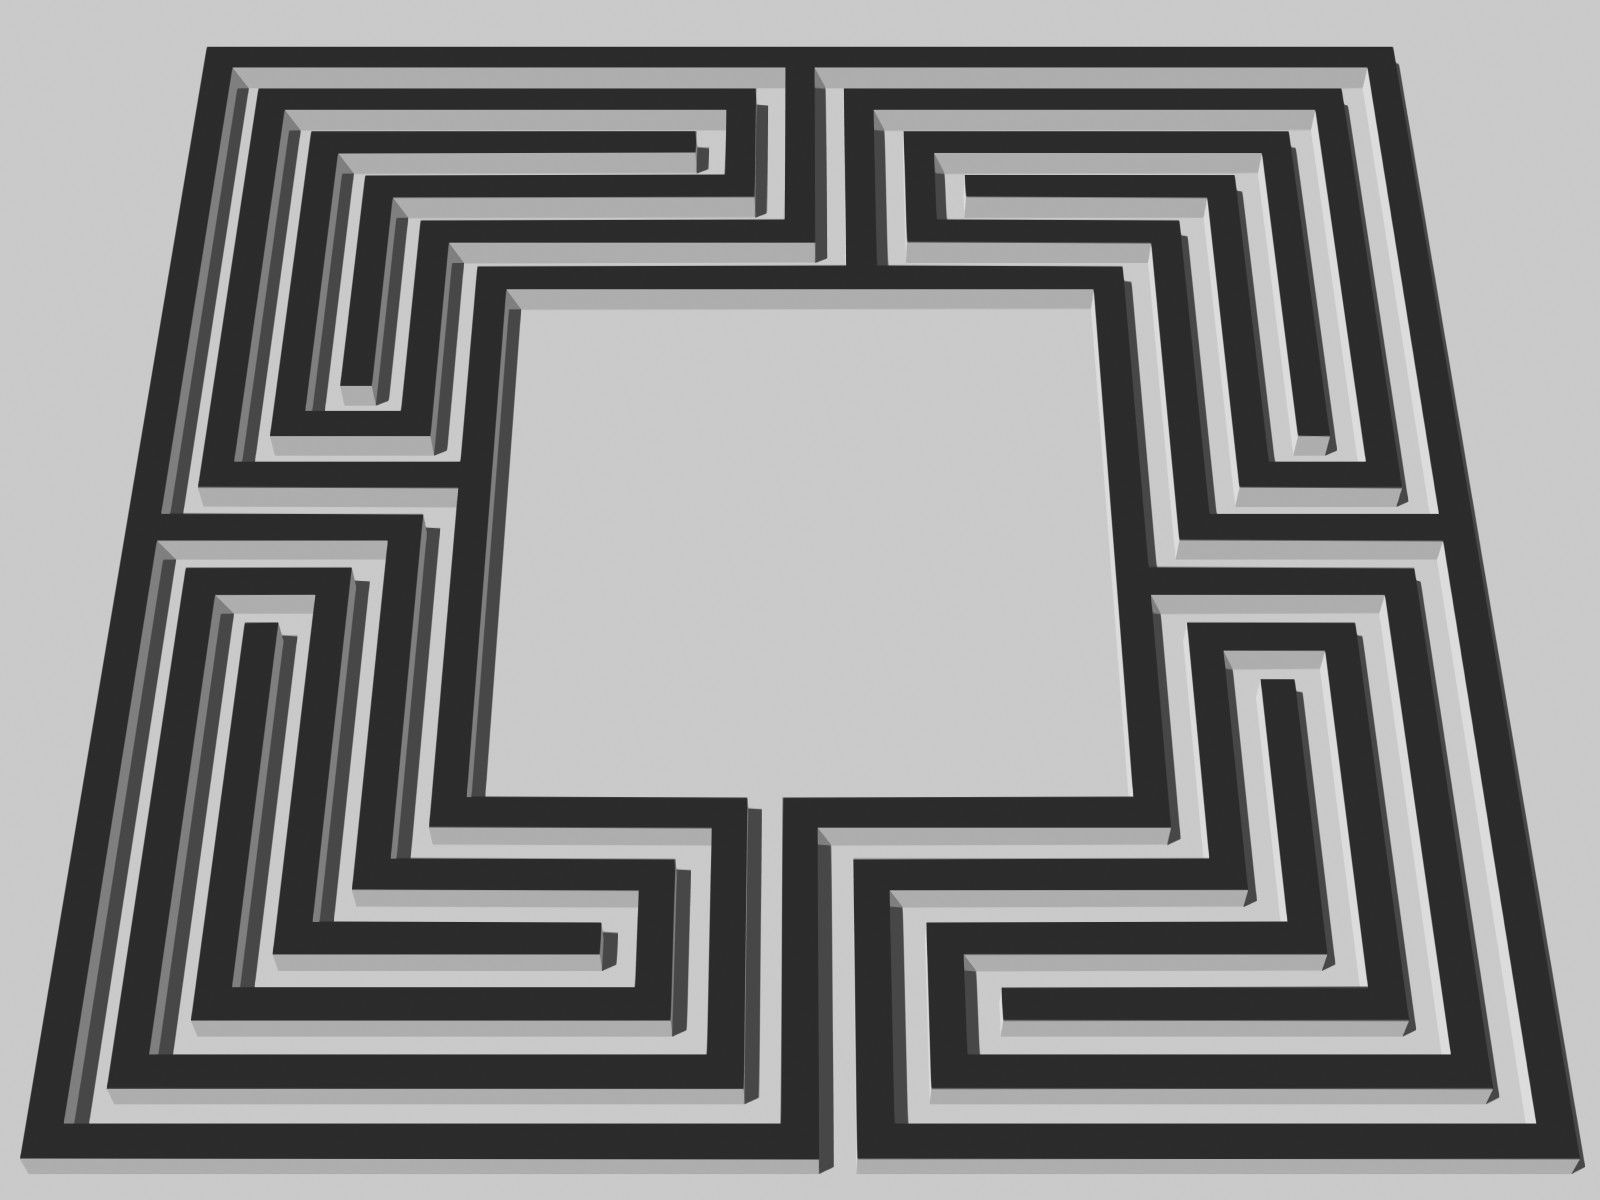 Labyrinth Designs Easy | Simple Square Labyrinth ... Simple Square Maze